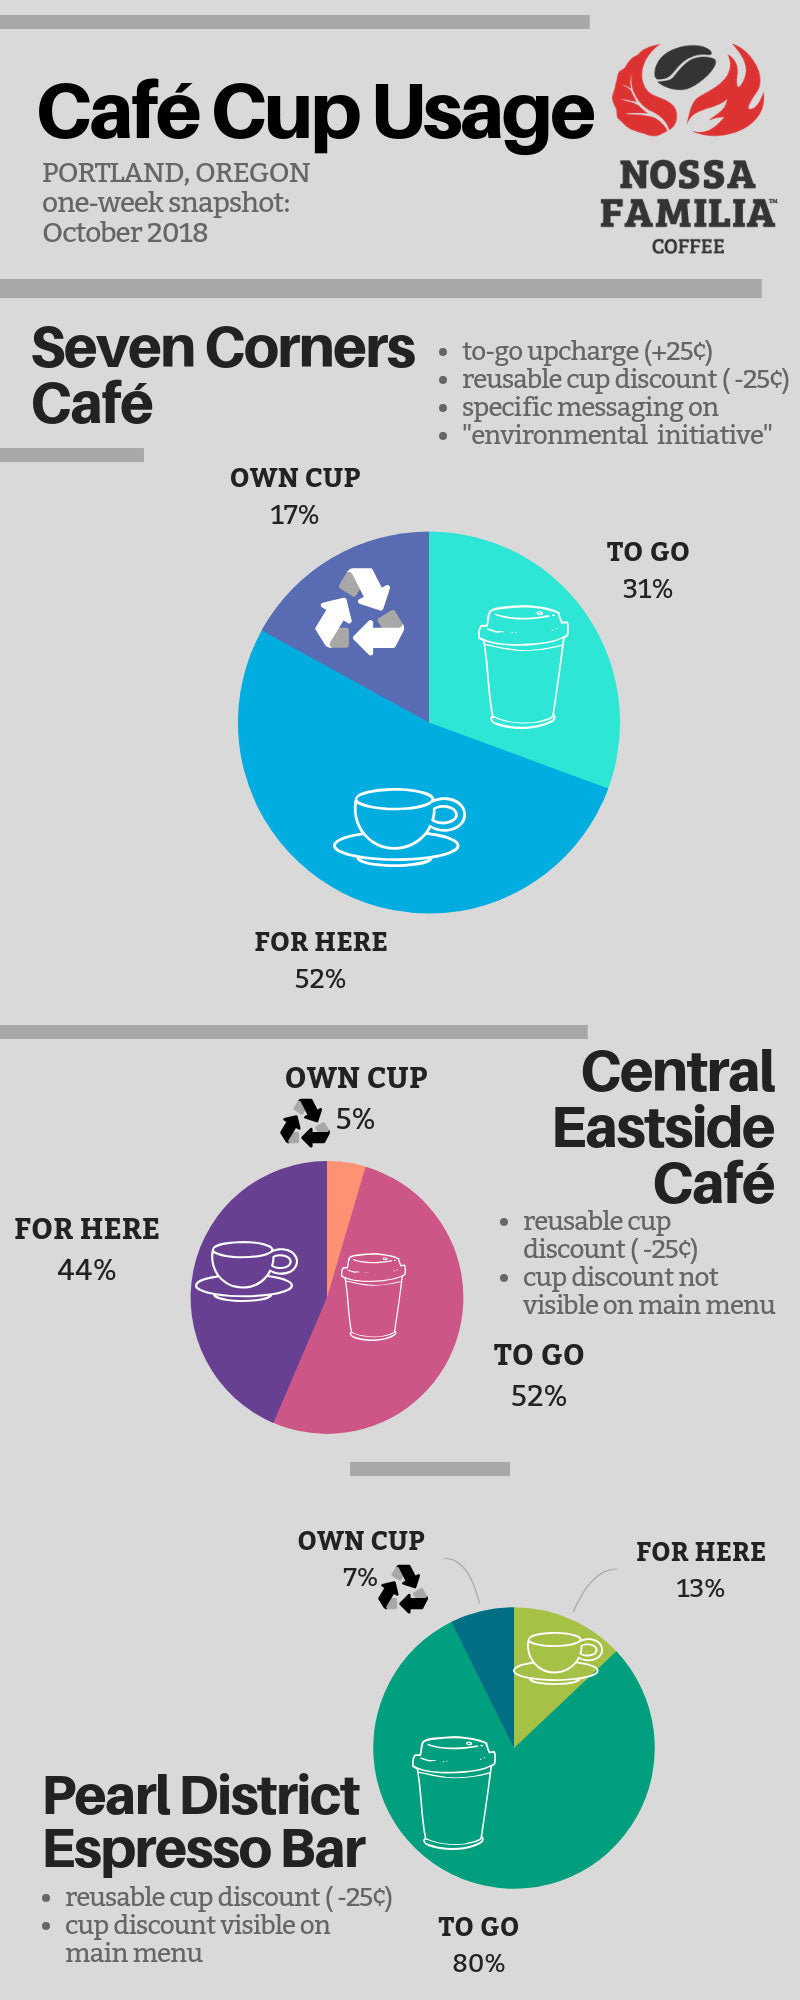 Cafe cup usage infographic - Nossa Familia Coffee